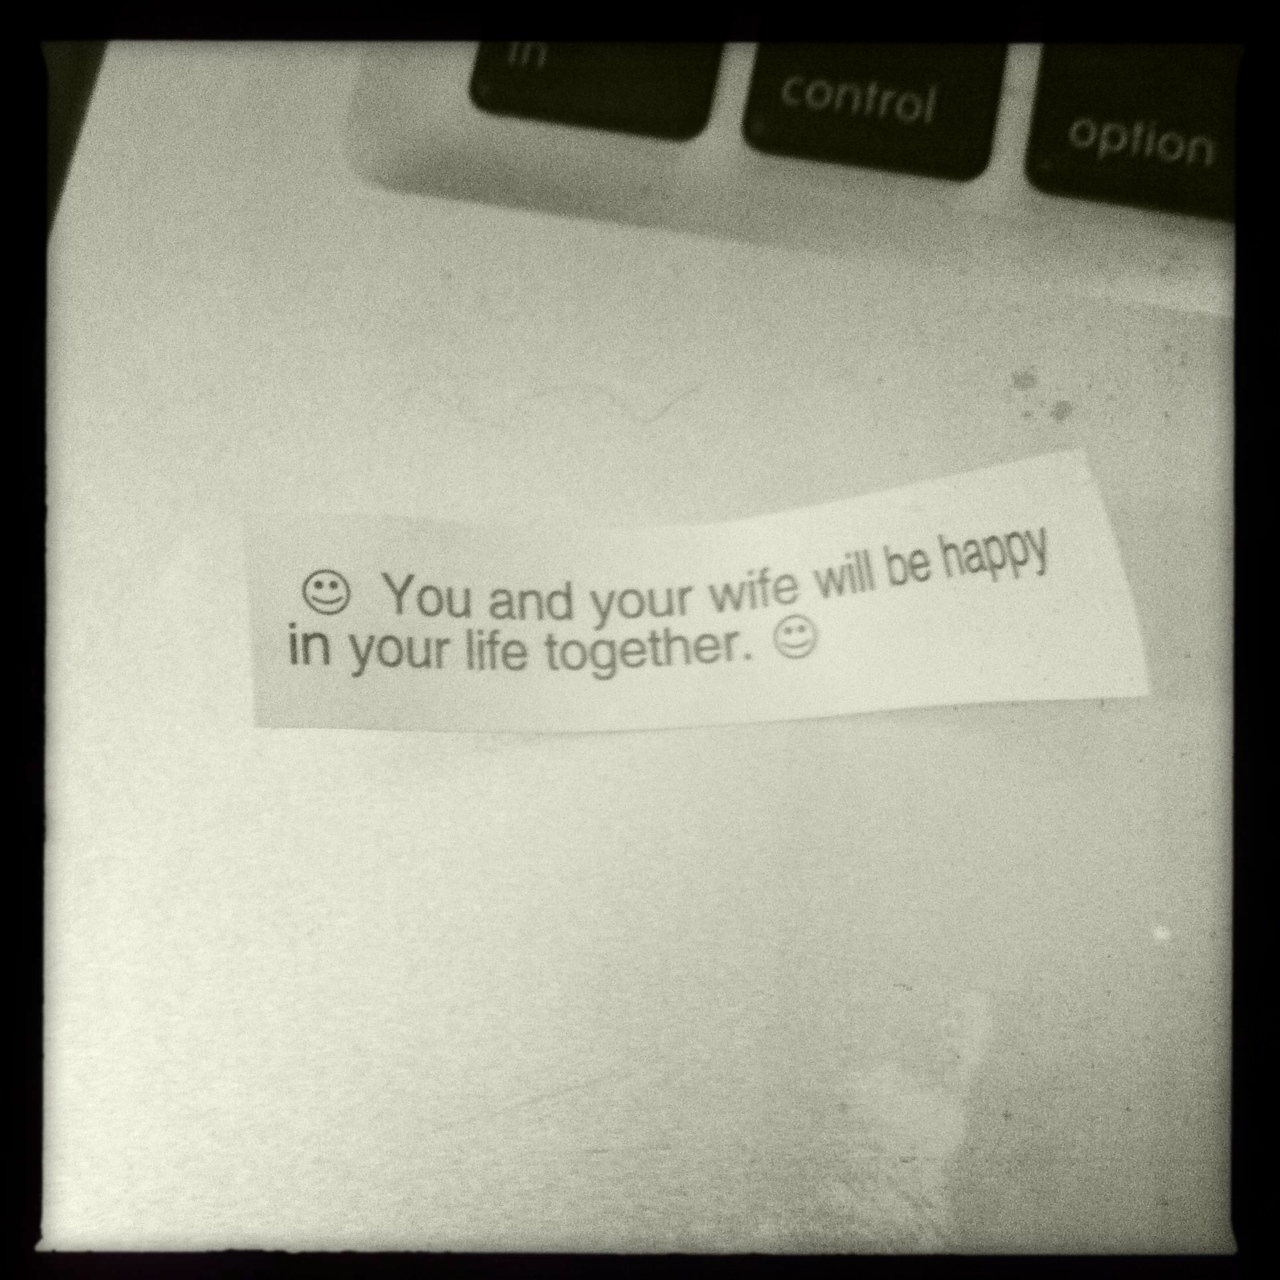 My husbands fortune cookie